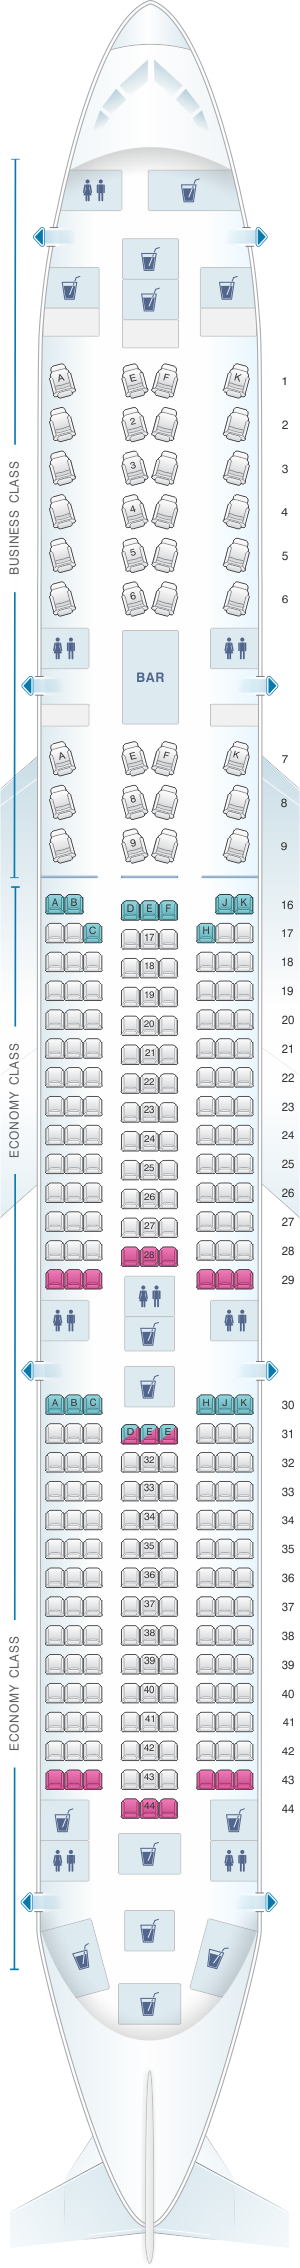 Seat map for Qatar Airways Airbus A350